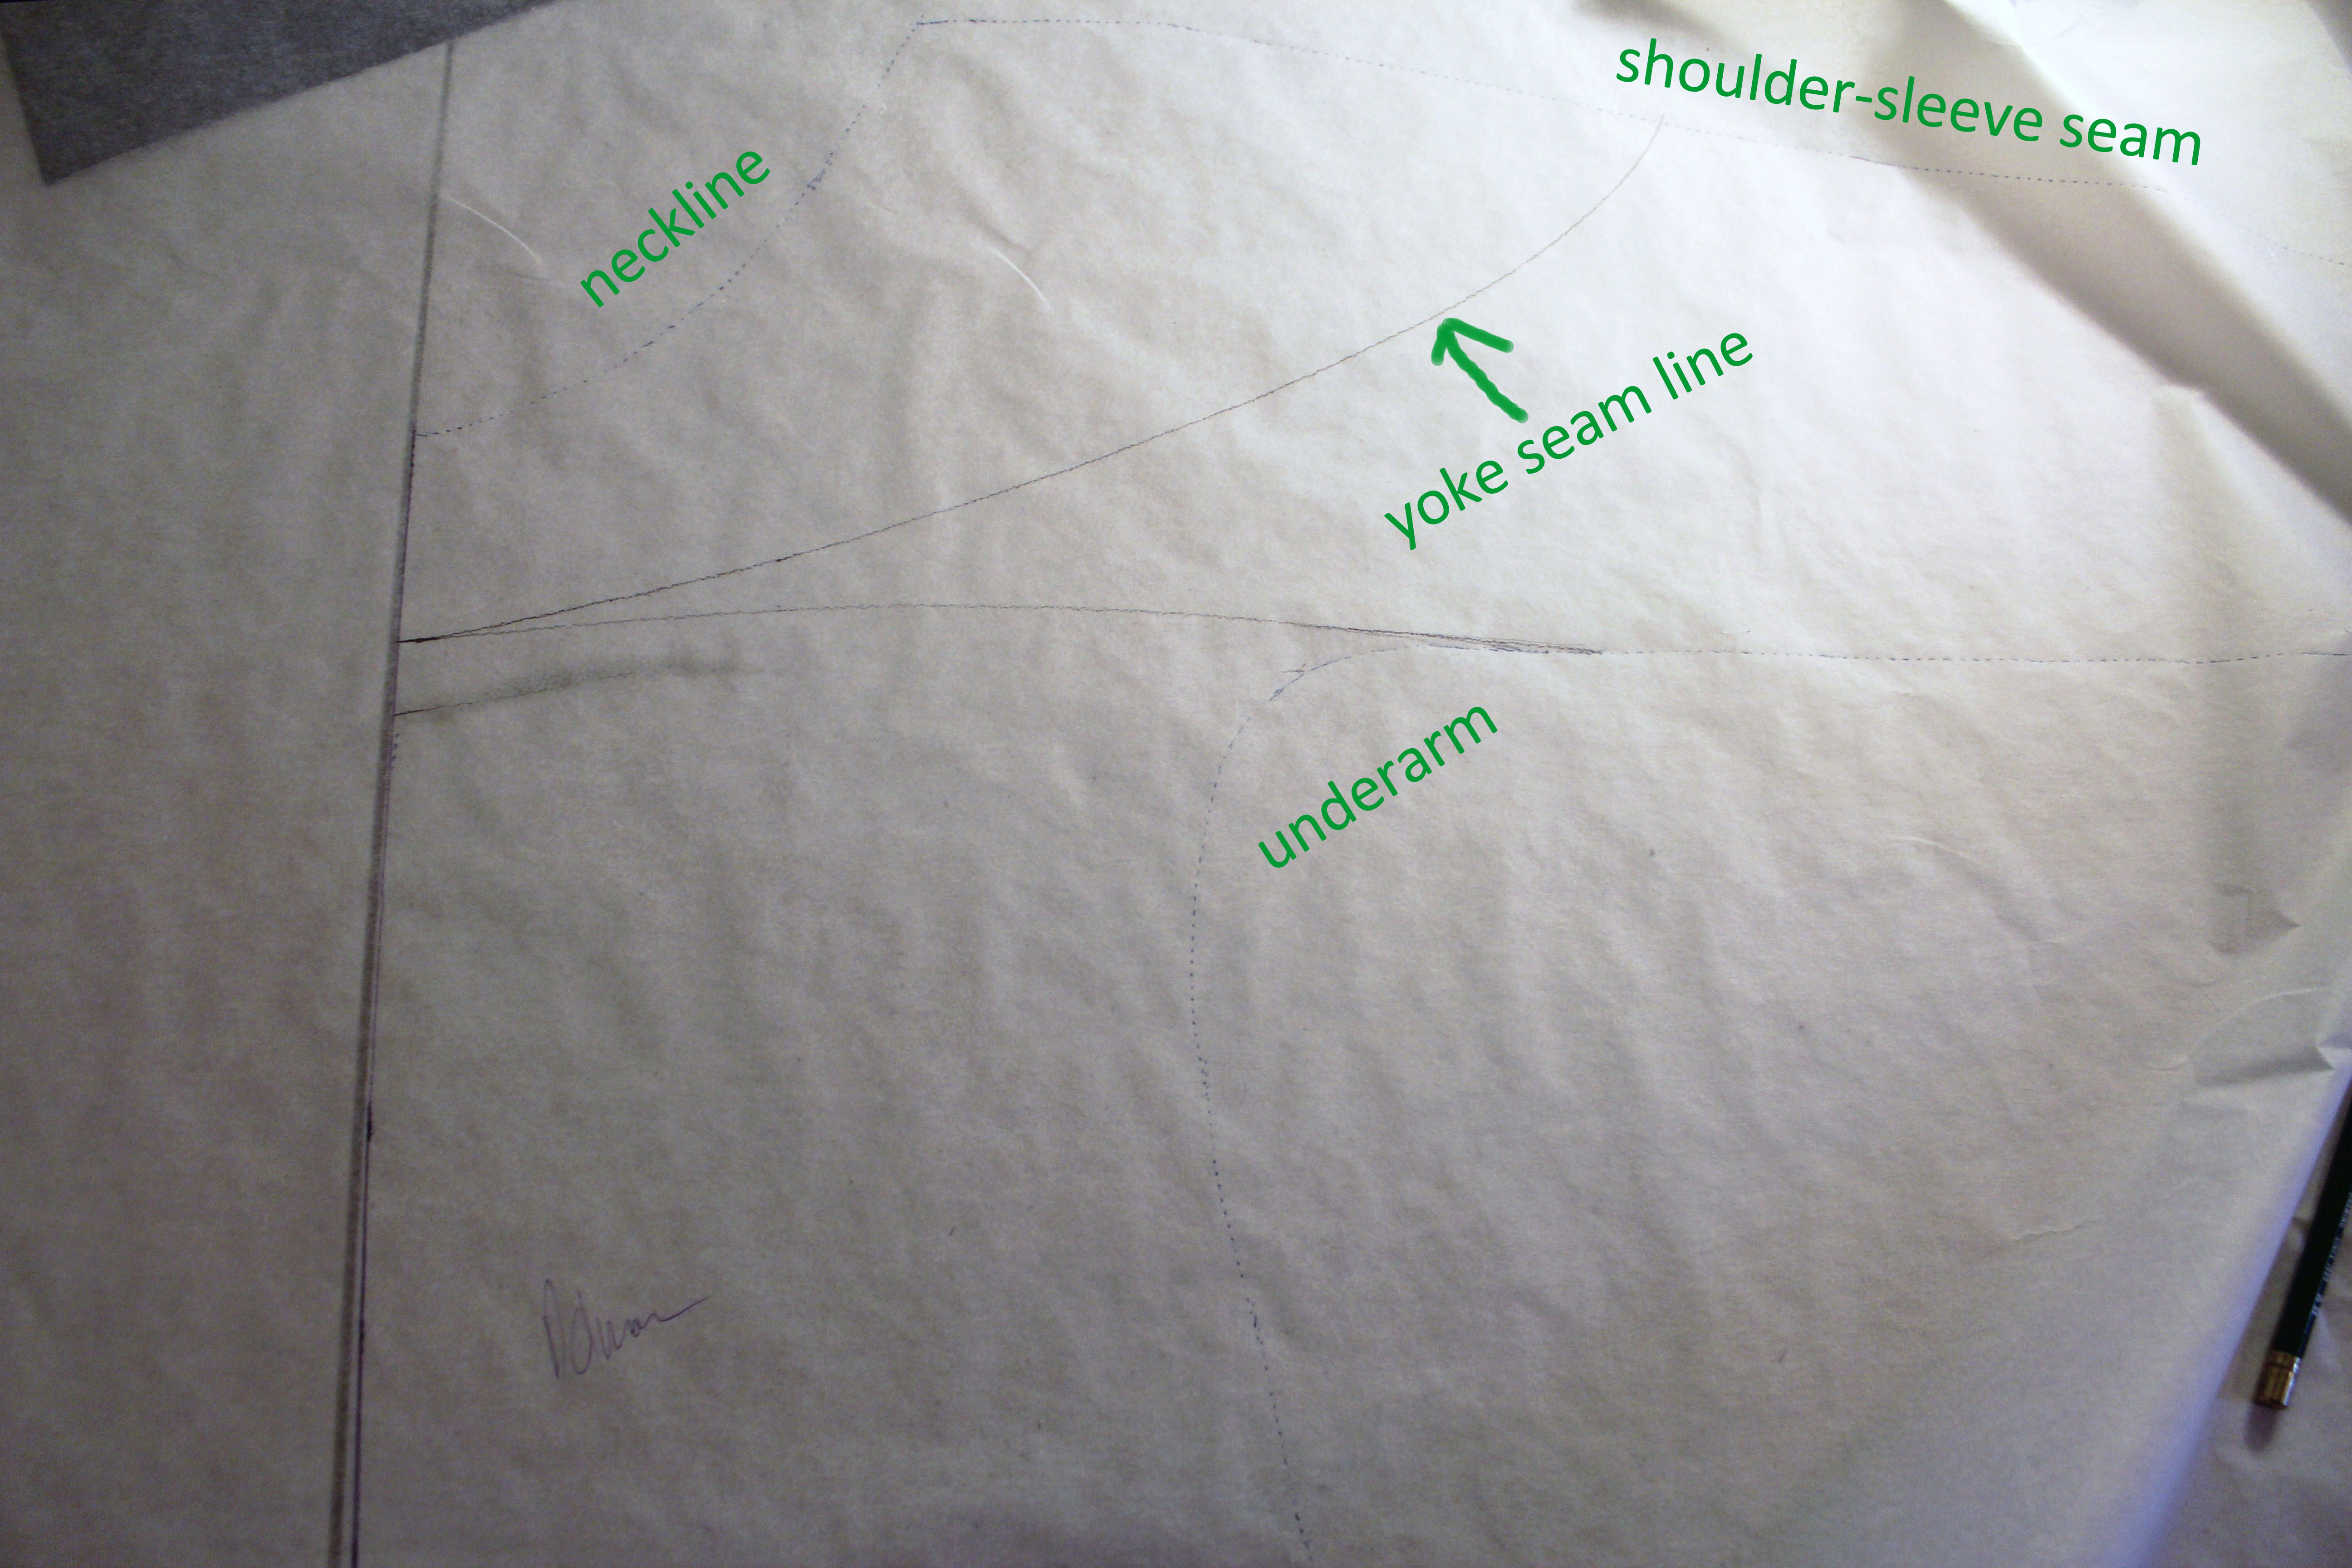 Draw your desired yoke seam line, and cut out the yoke and body of the shirt along the line.